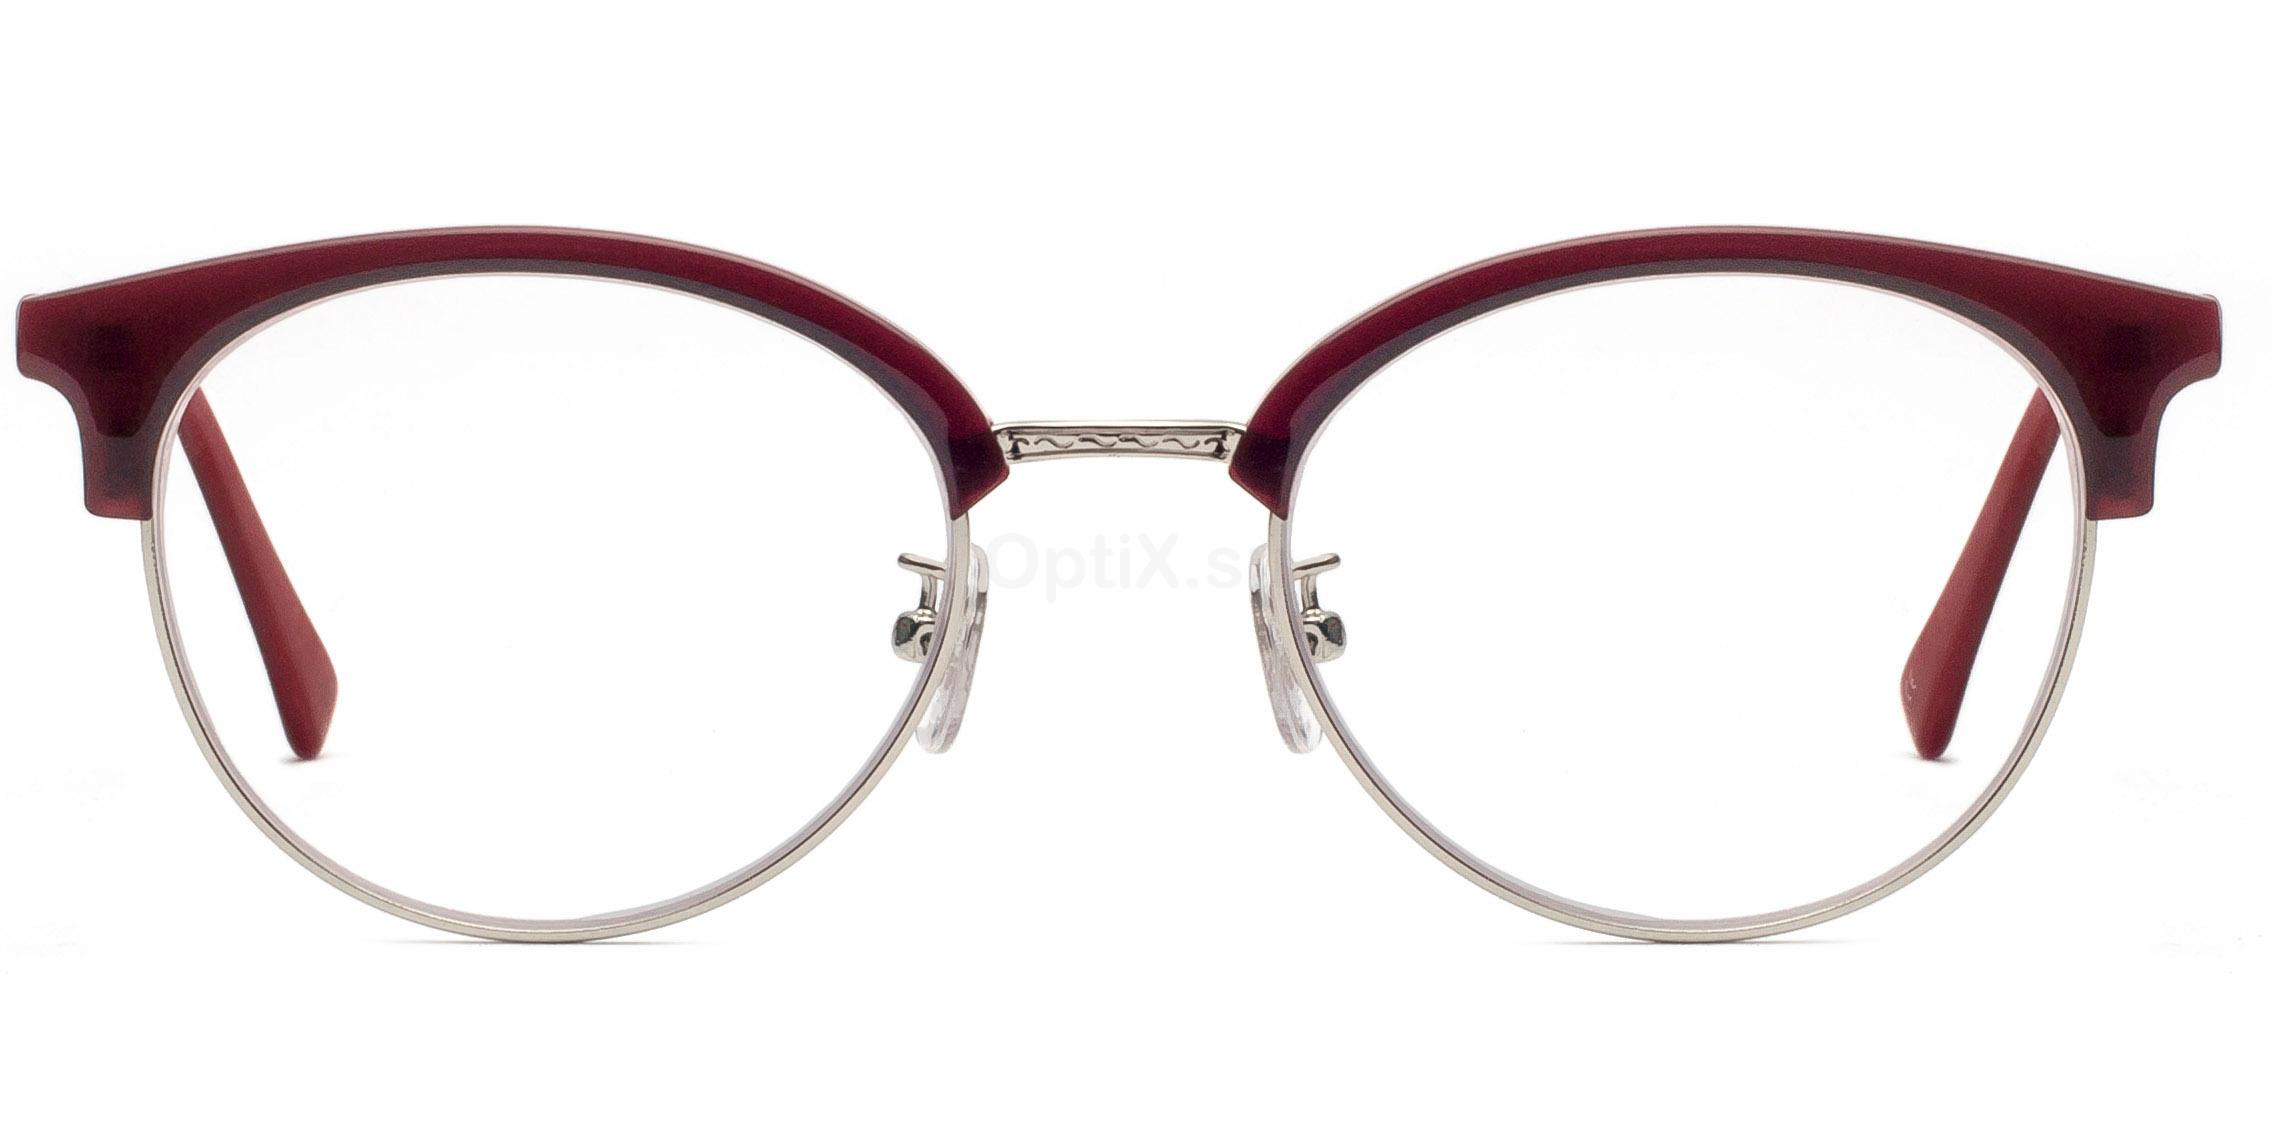 C10 5013 Glasses, Savannah